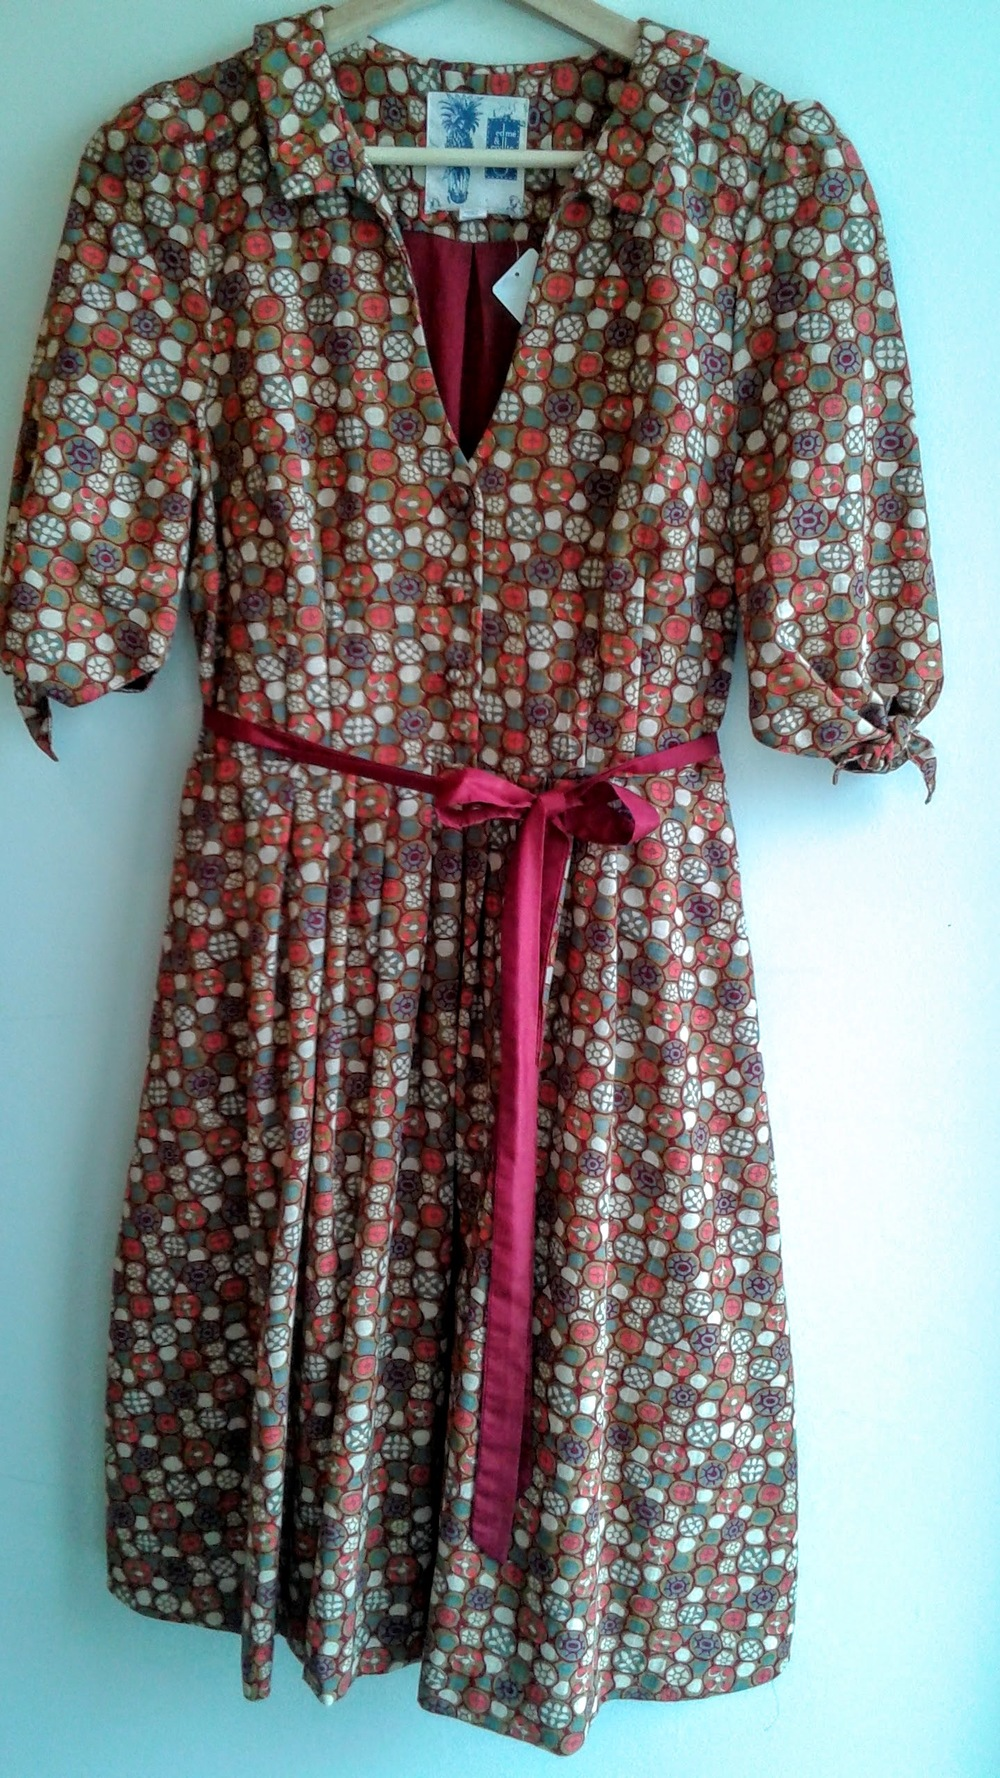 Edme & Esyllte dress; Size 6, $42